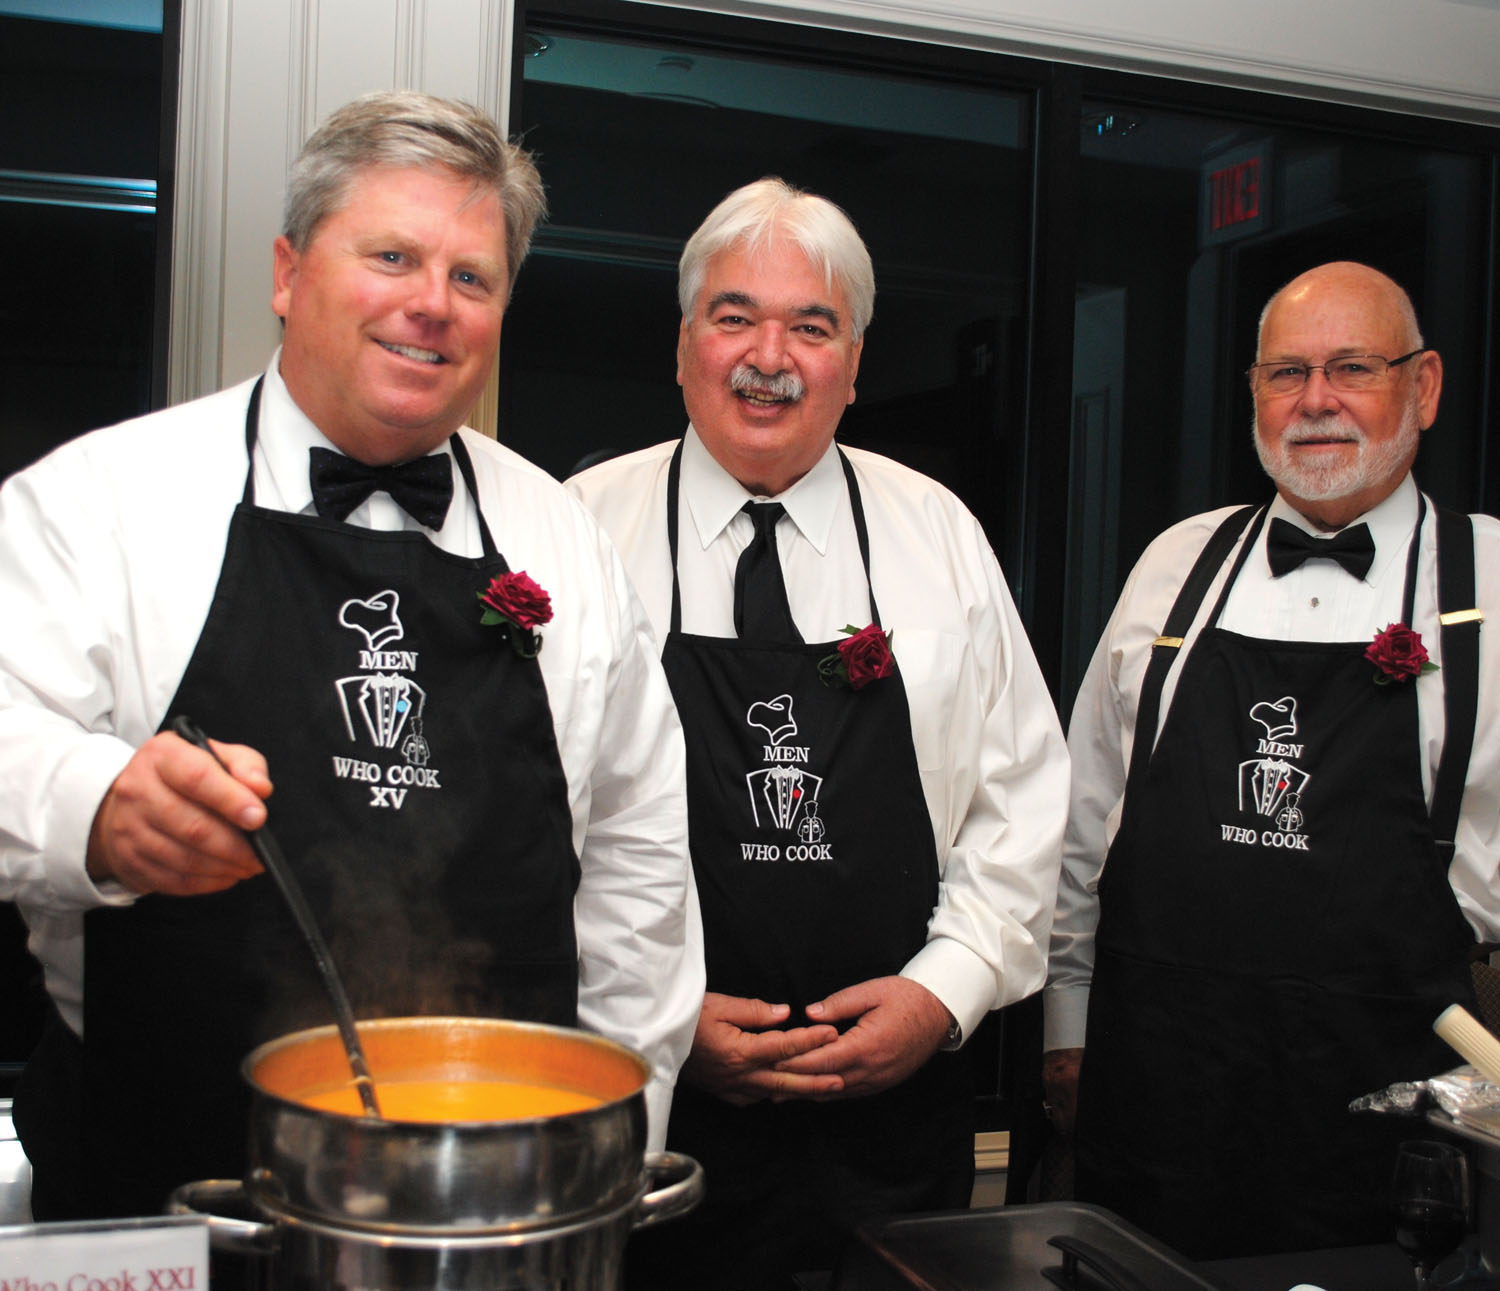 Trey Hafely, stirs his Lobster Bisque, as Rick Clapp, center, and Bobby Horton look on during the Seabrook Men Who Cook at Lakewood Yacht Club. This is Hafely's 13th year as a chef and Clapp's 20th year.